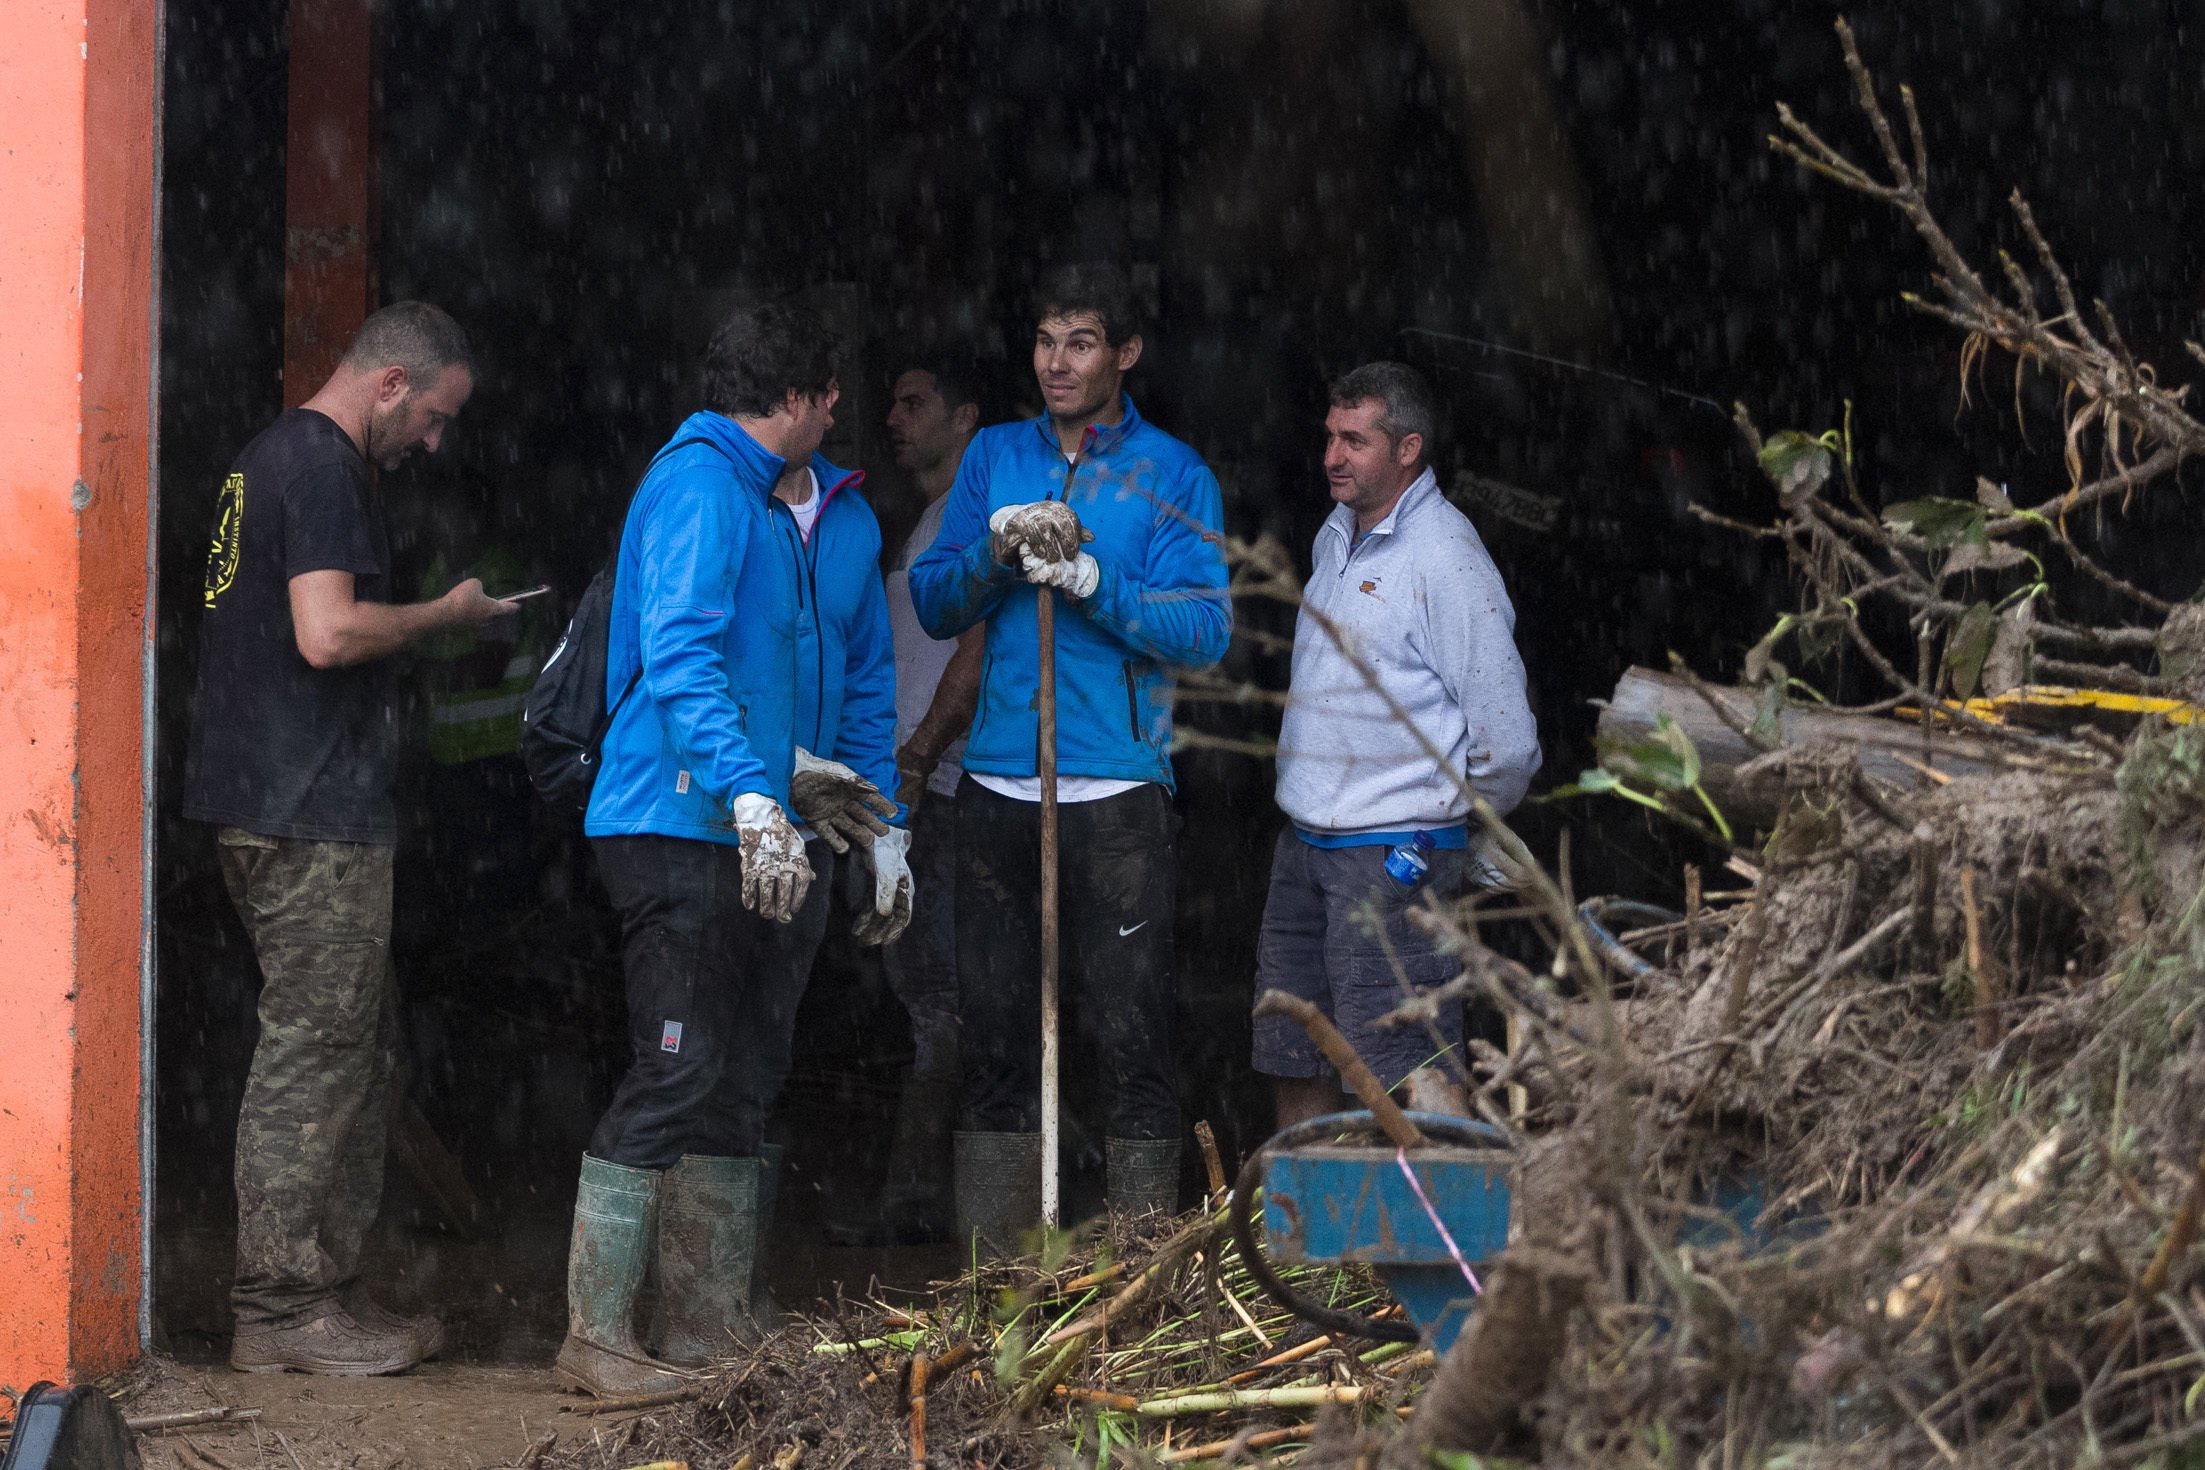 Spanish tennis player Rafael Nadal works with residents to clear the mud from their houses after flooding in Sant Llorenc, 60 kilometers (40 miles) east of Mallorca's capital, Palma, Spain, Wednesday, Oct. 10, 2018. Torrential rainstorms that caused flash flooding of water and mud on the Spanish island of Mallorca killed at least nine people, authorities said on Wednesday. (AP Photo/Francisco Ubilla)